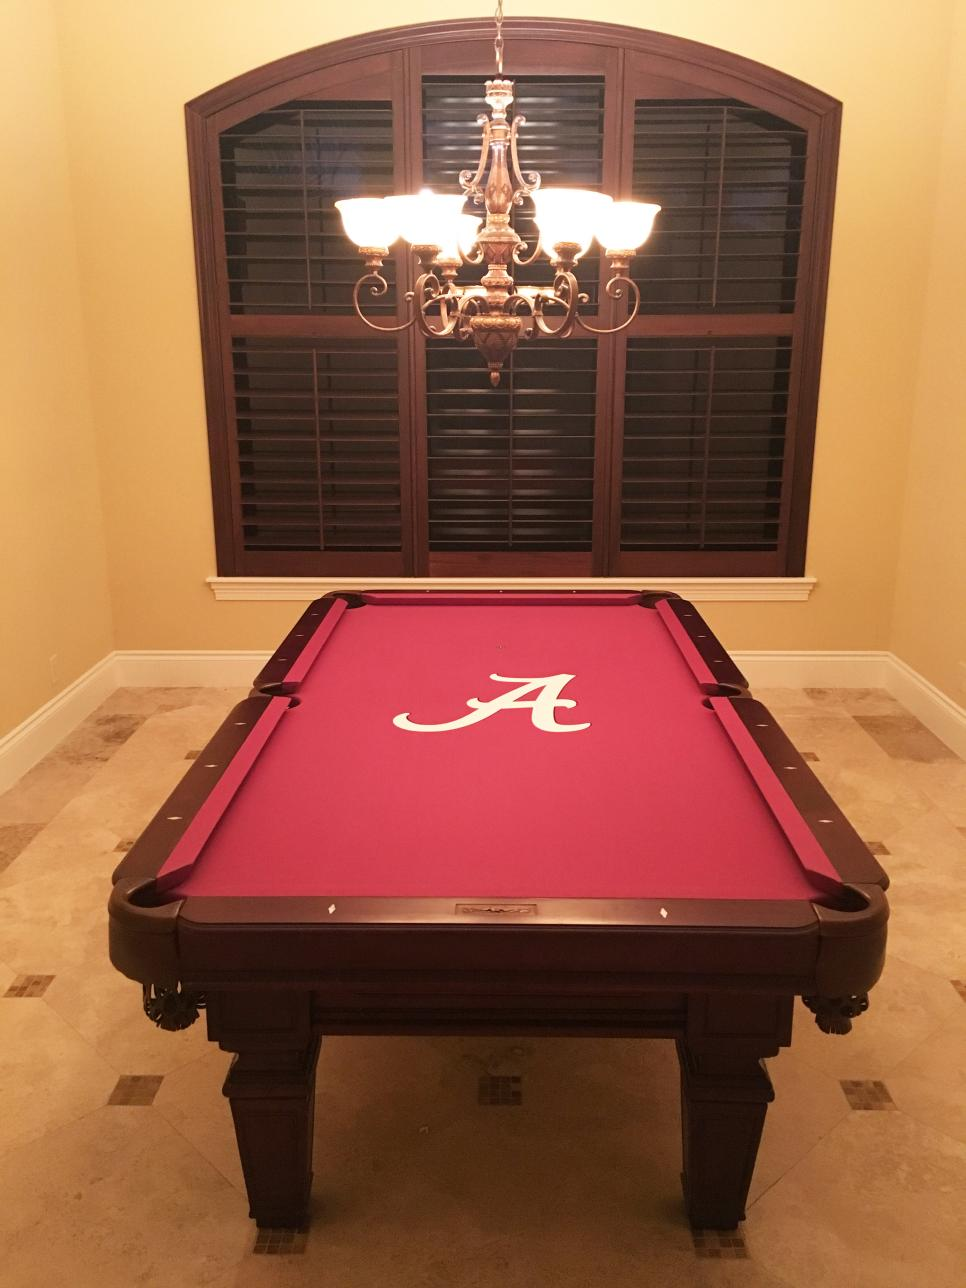 alabama-pool-table-thomas-cauley.jpg